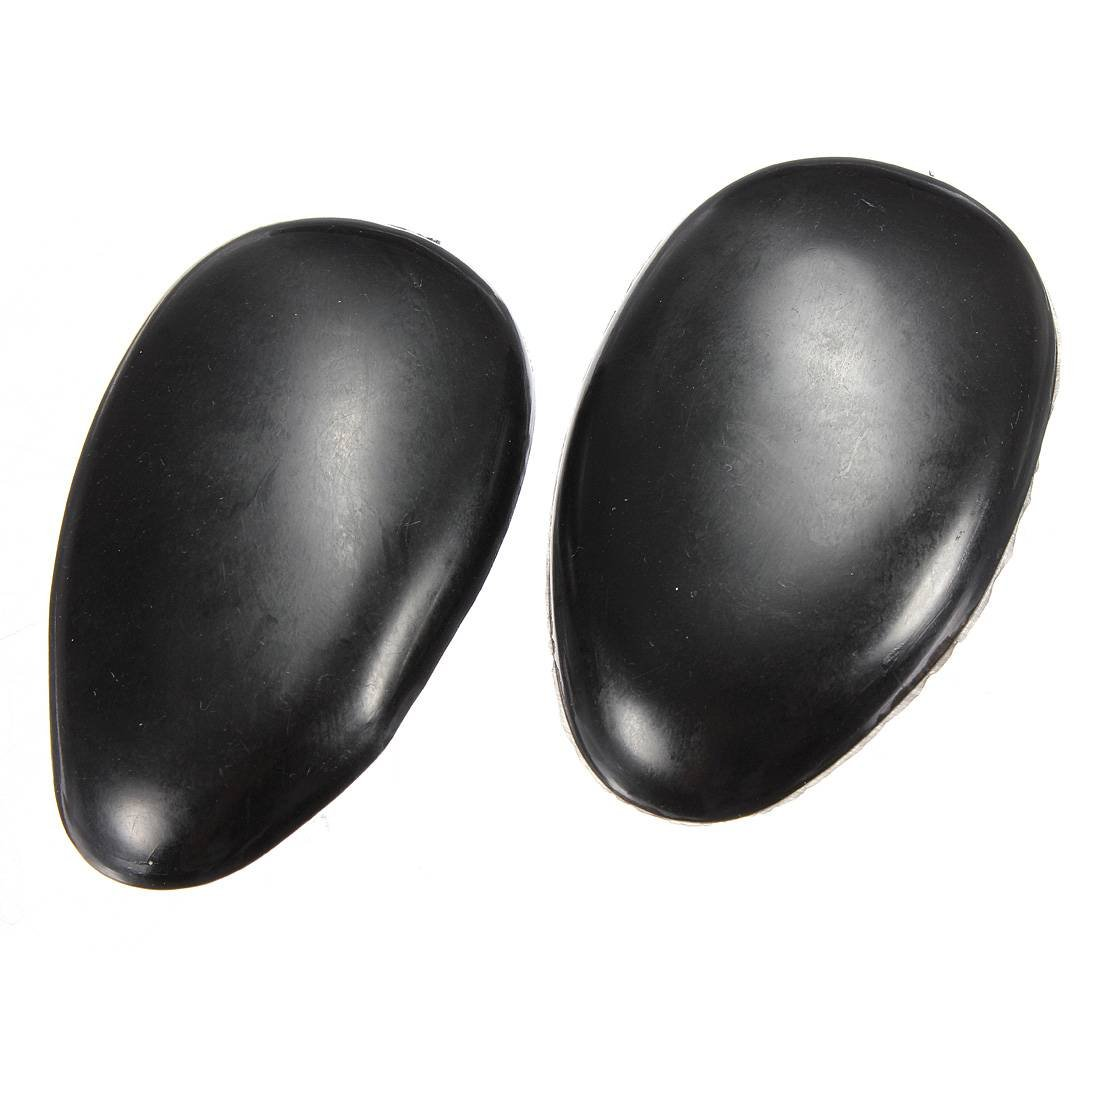 New 1 Pair Black Plastic Hair Dye Color Coloring Ear Cover Shield Protect Tint Clip Hairdressing Salon Accessories